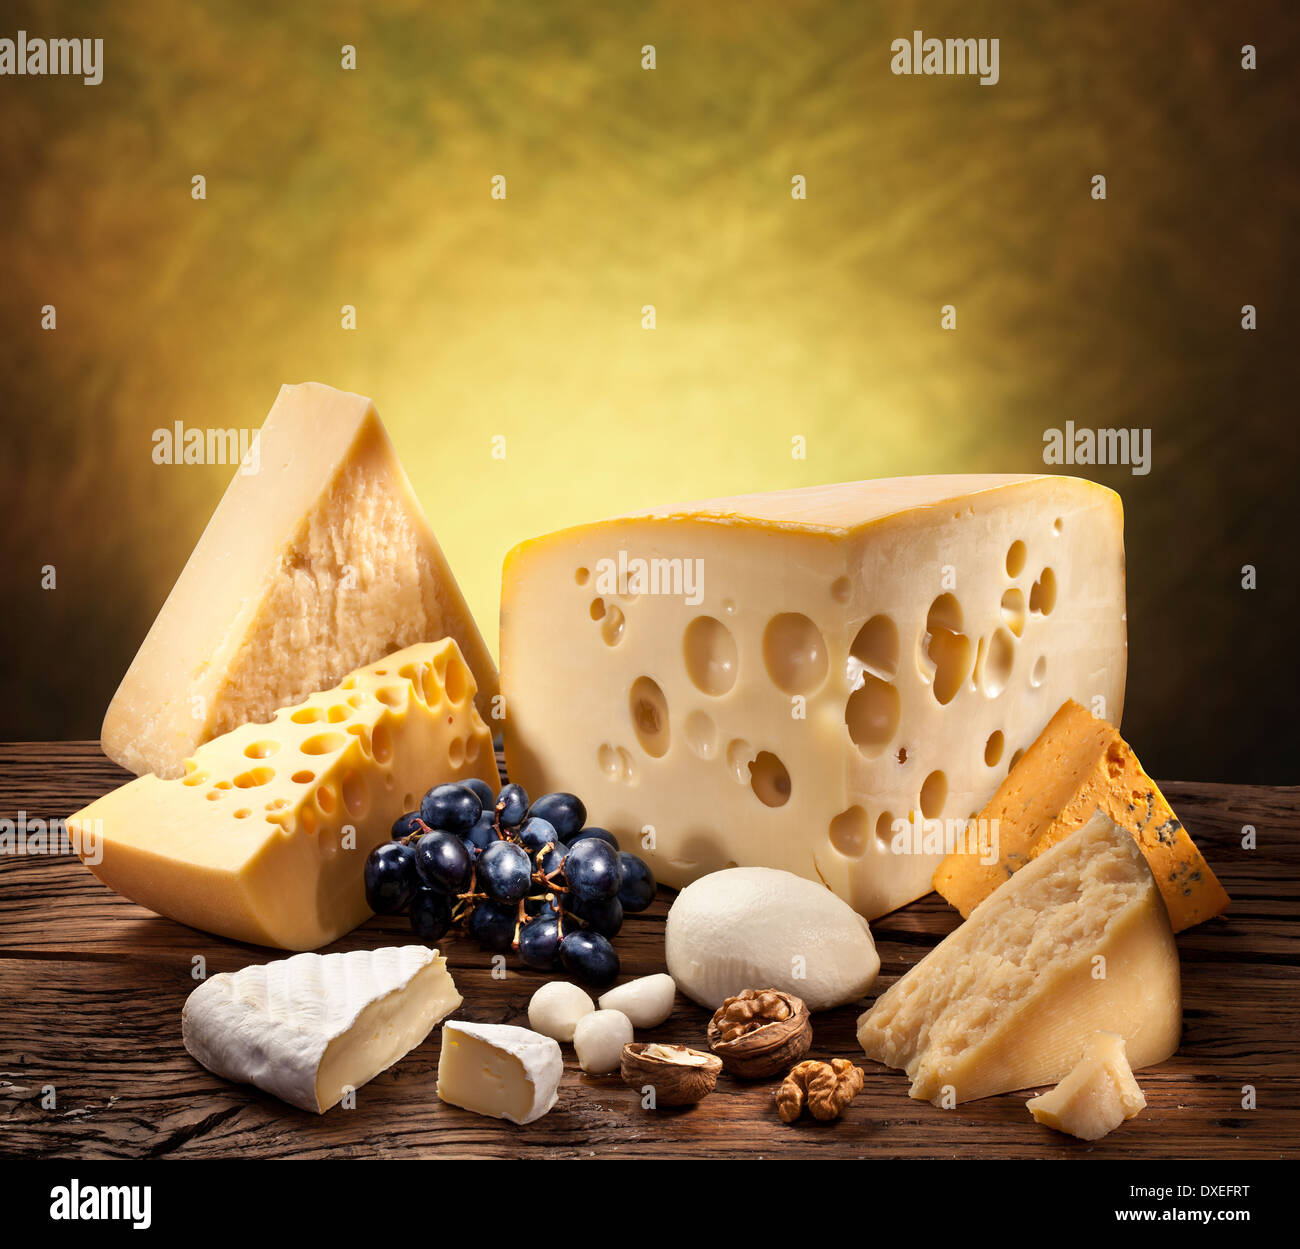 Different types of cheese over old wooden table. - Stock Image